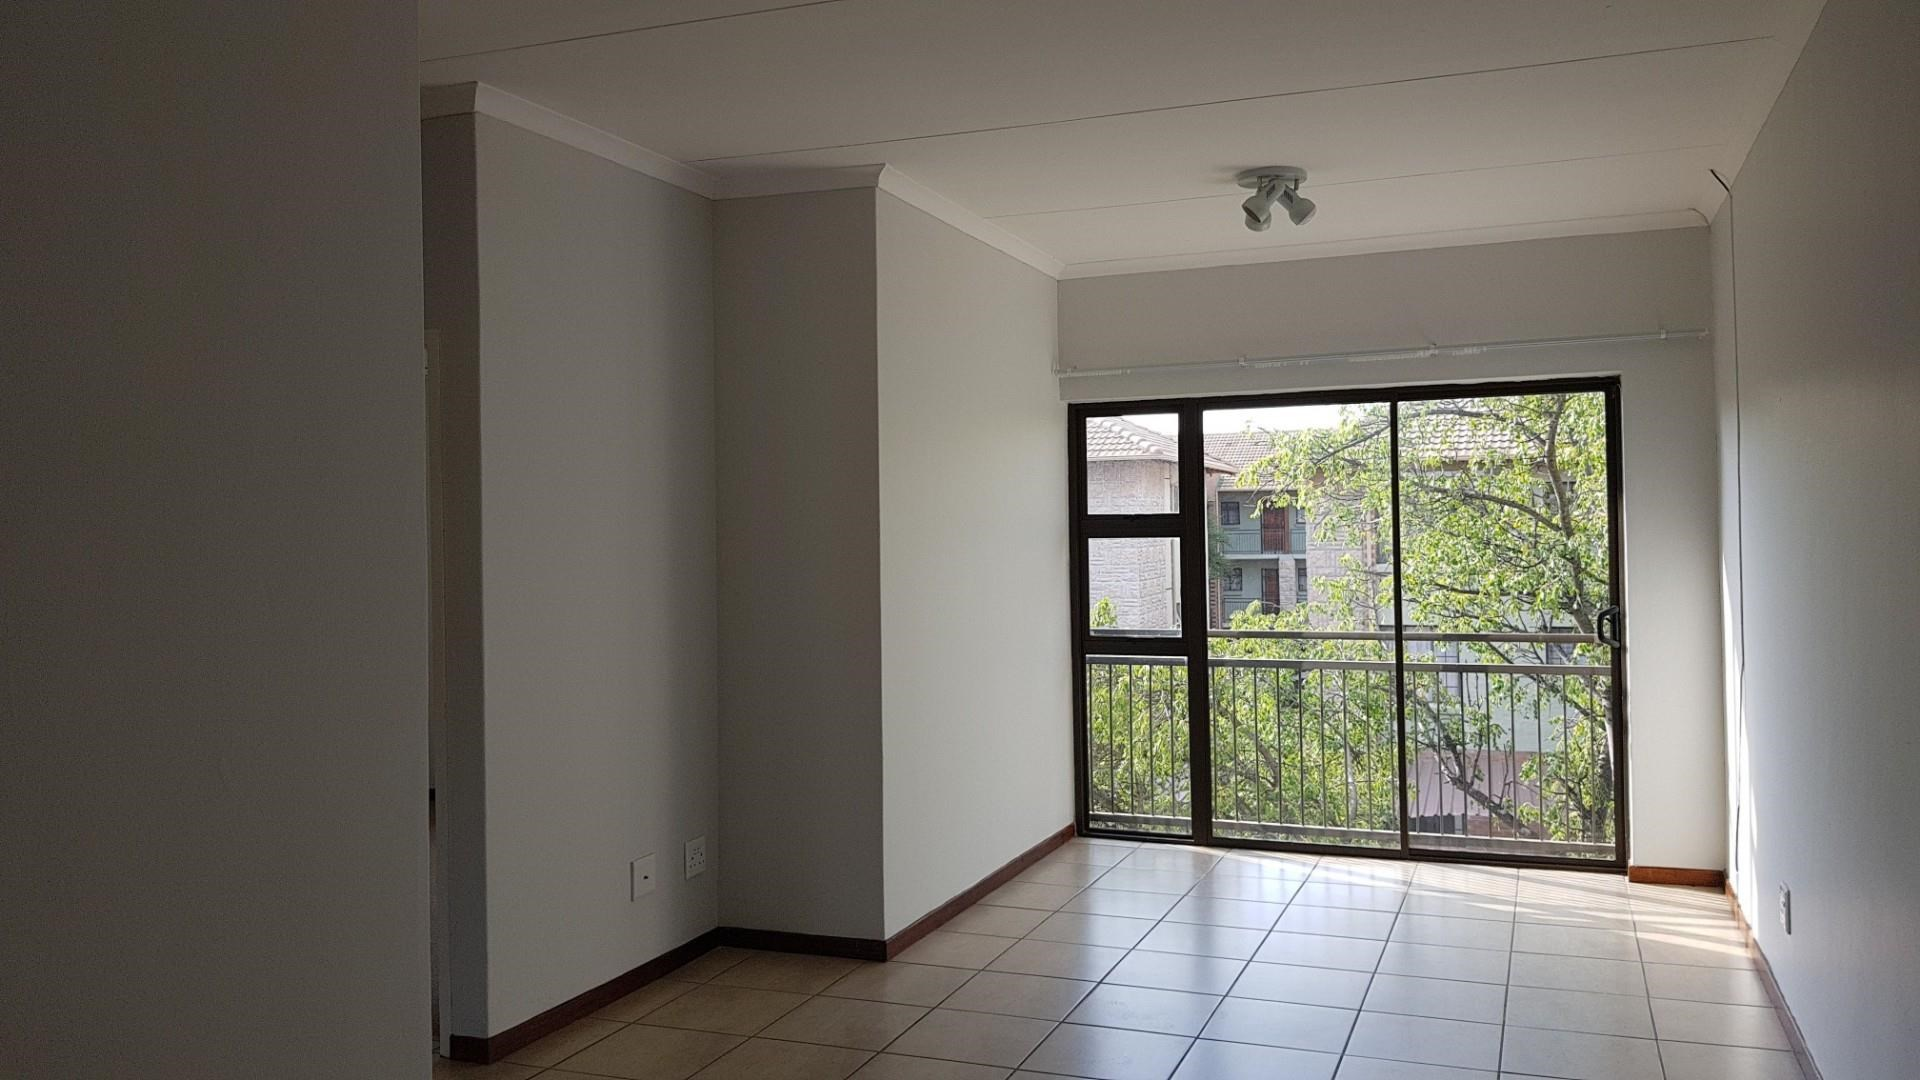 2 Bedroom Apartment for Sale in Lephalale